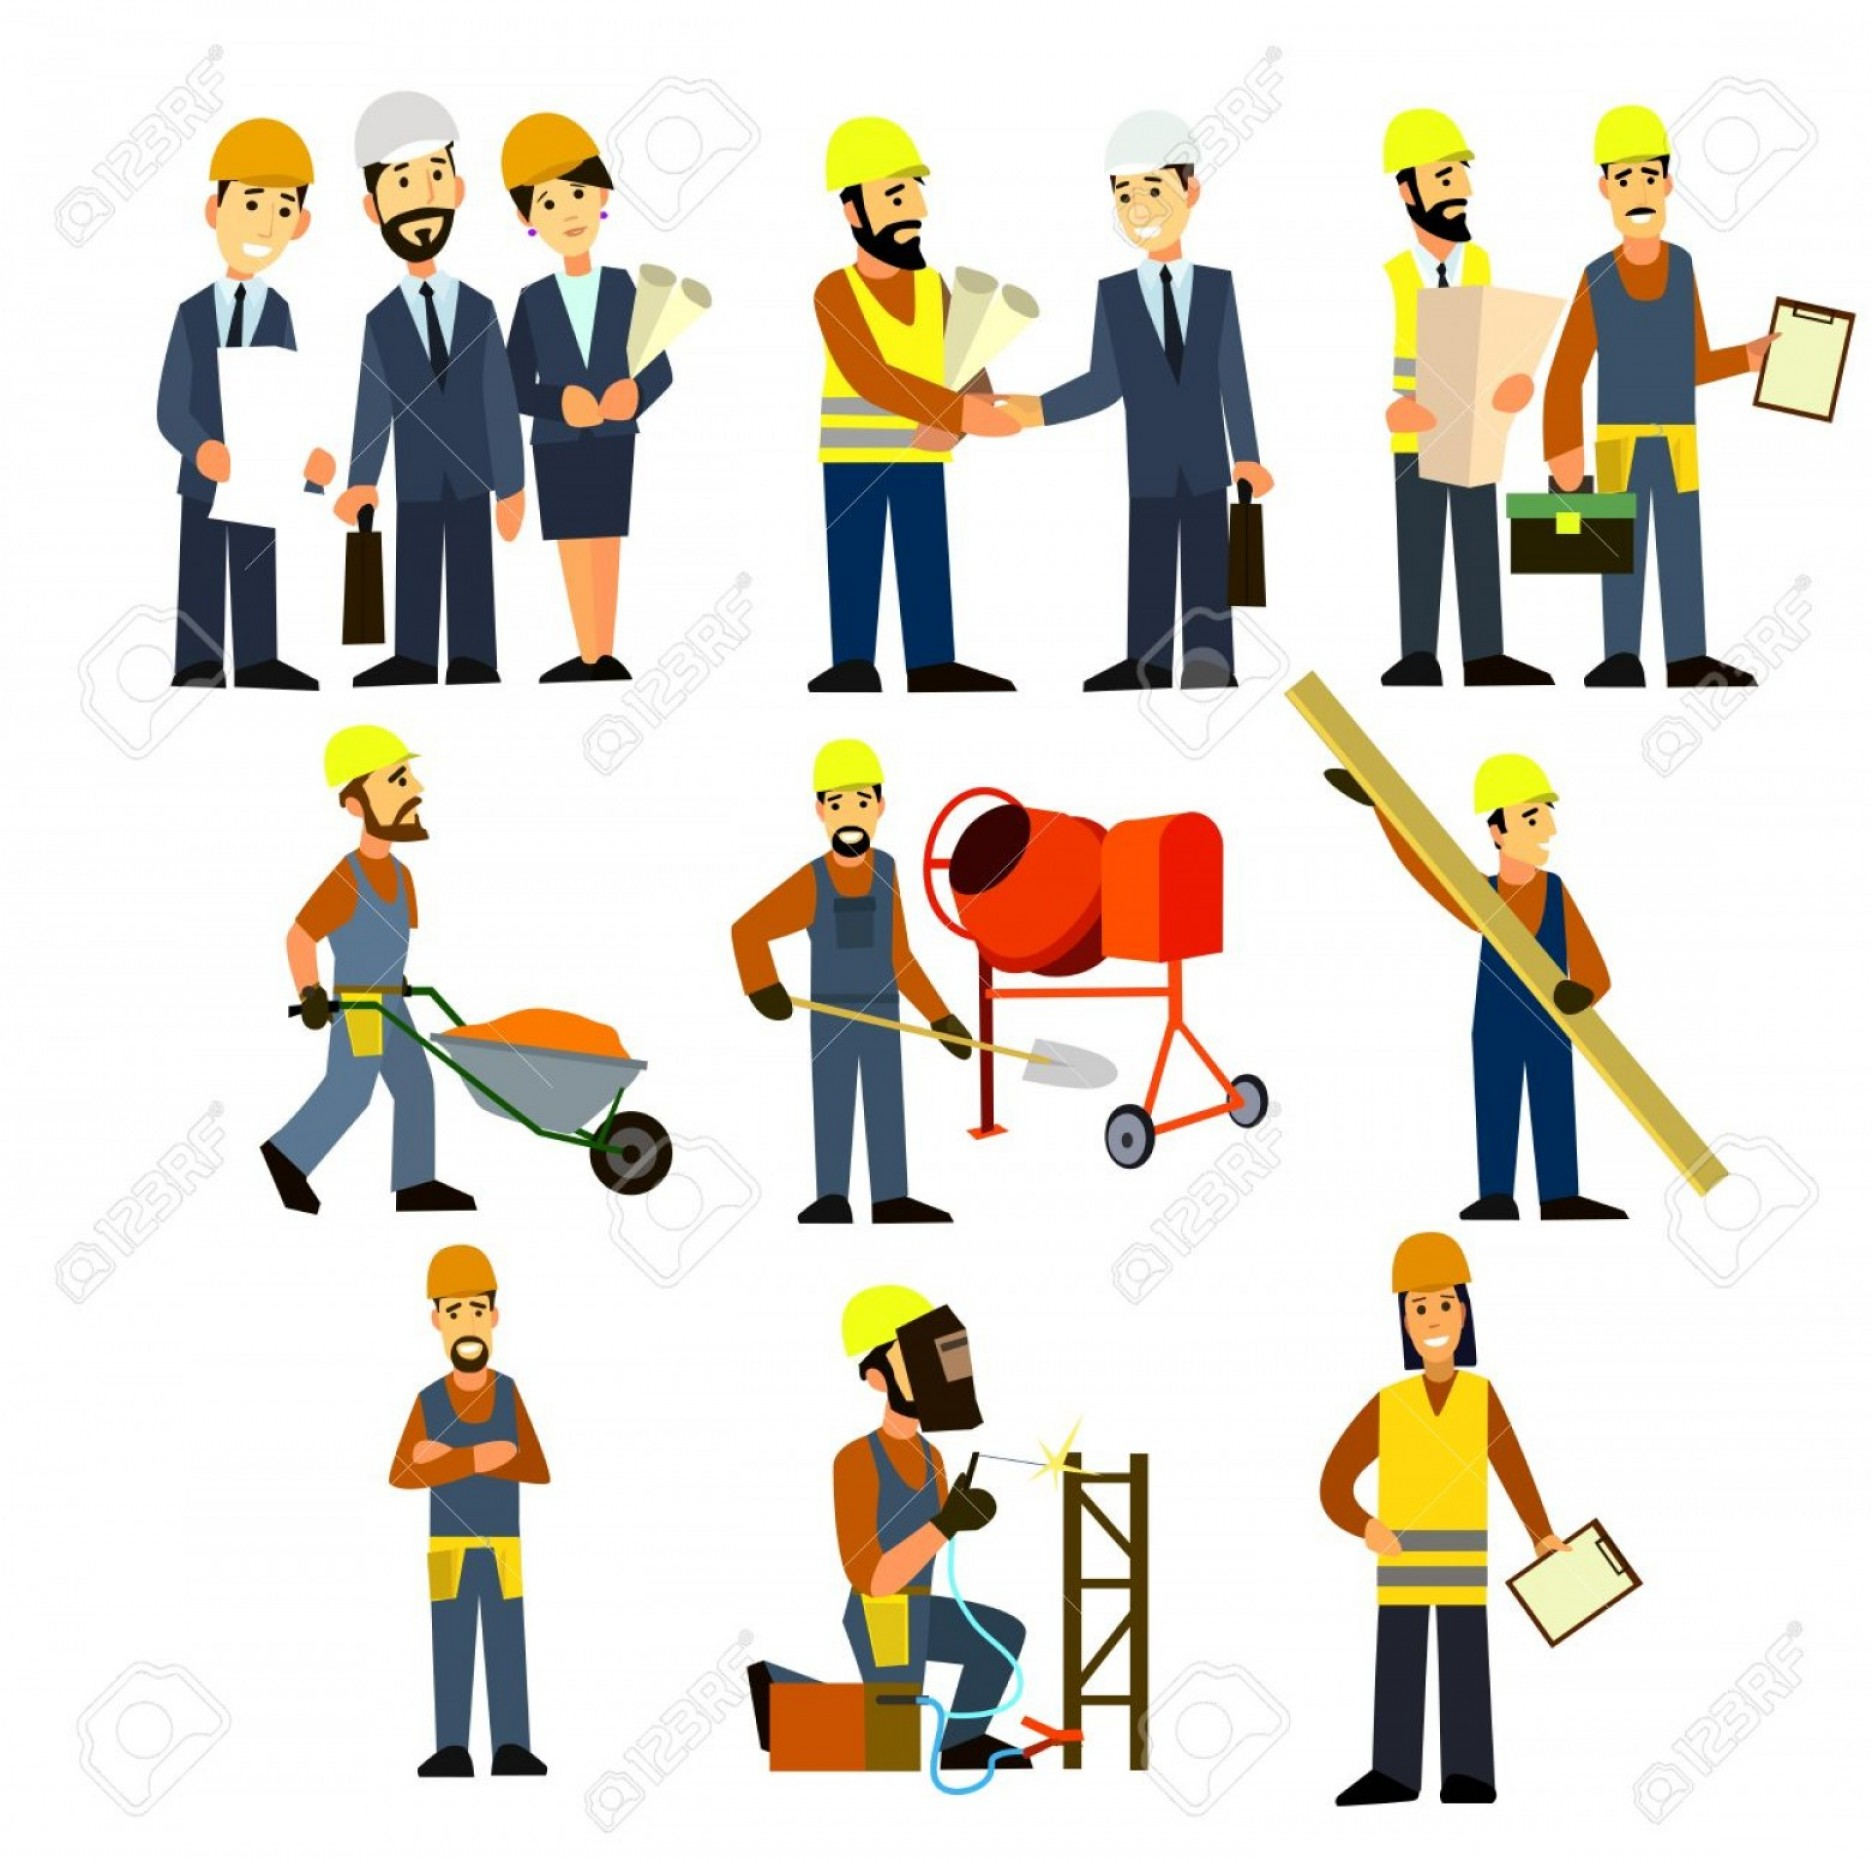 Vector Graphic Of Civil Engineering: Photostock Vector Construction Engineering Industrial Workers Project Manager Vector Civil Engineer Architect And Cons